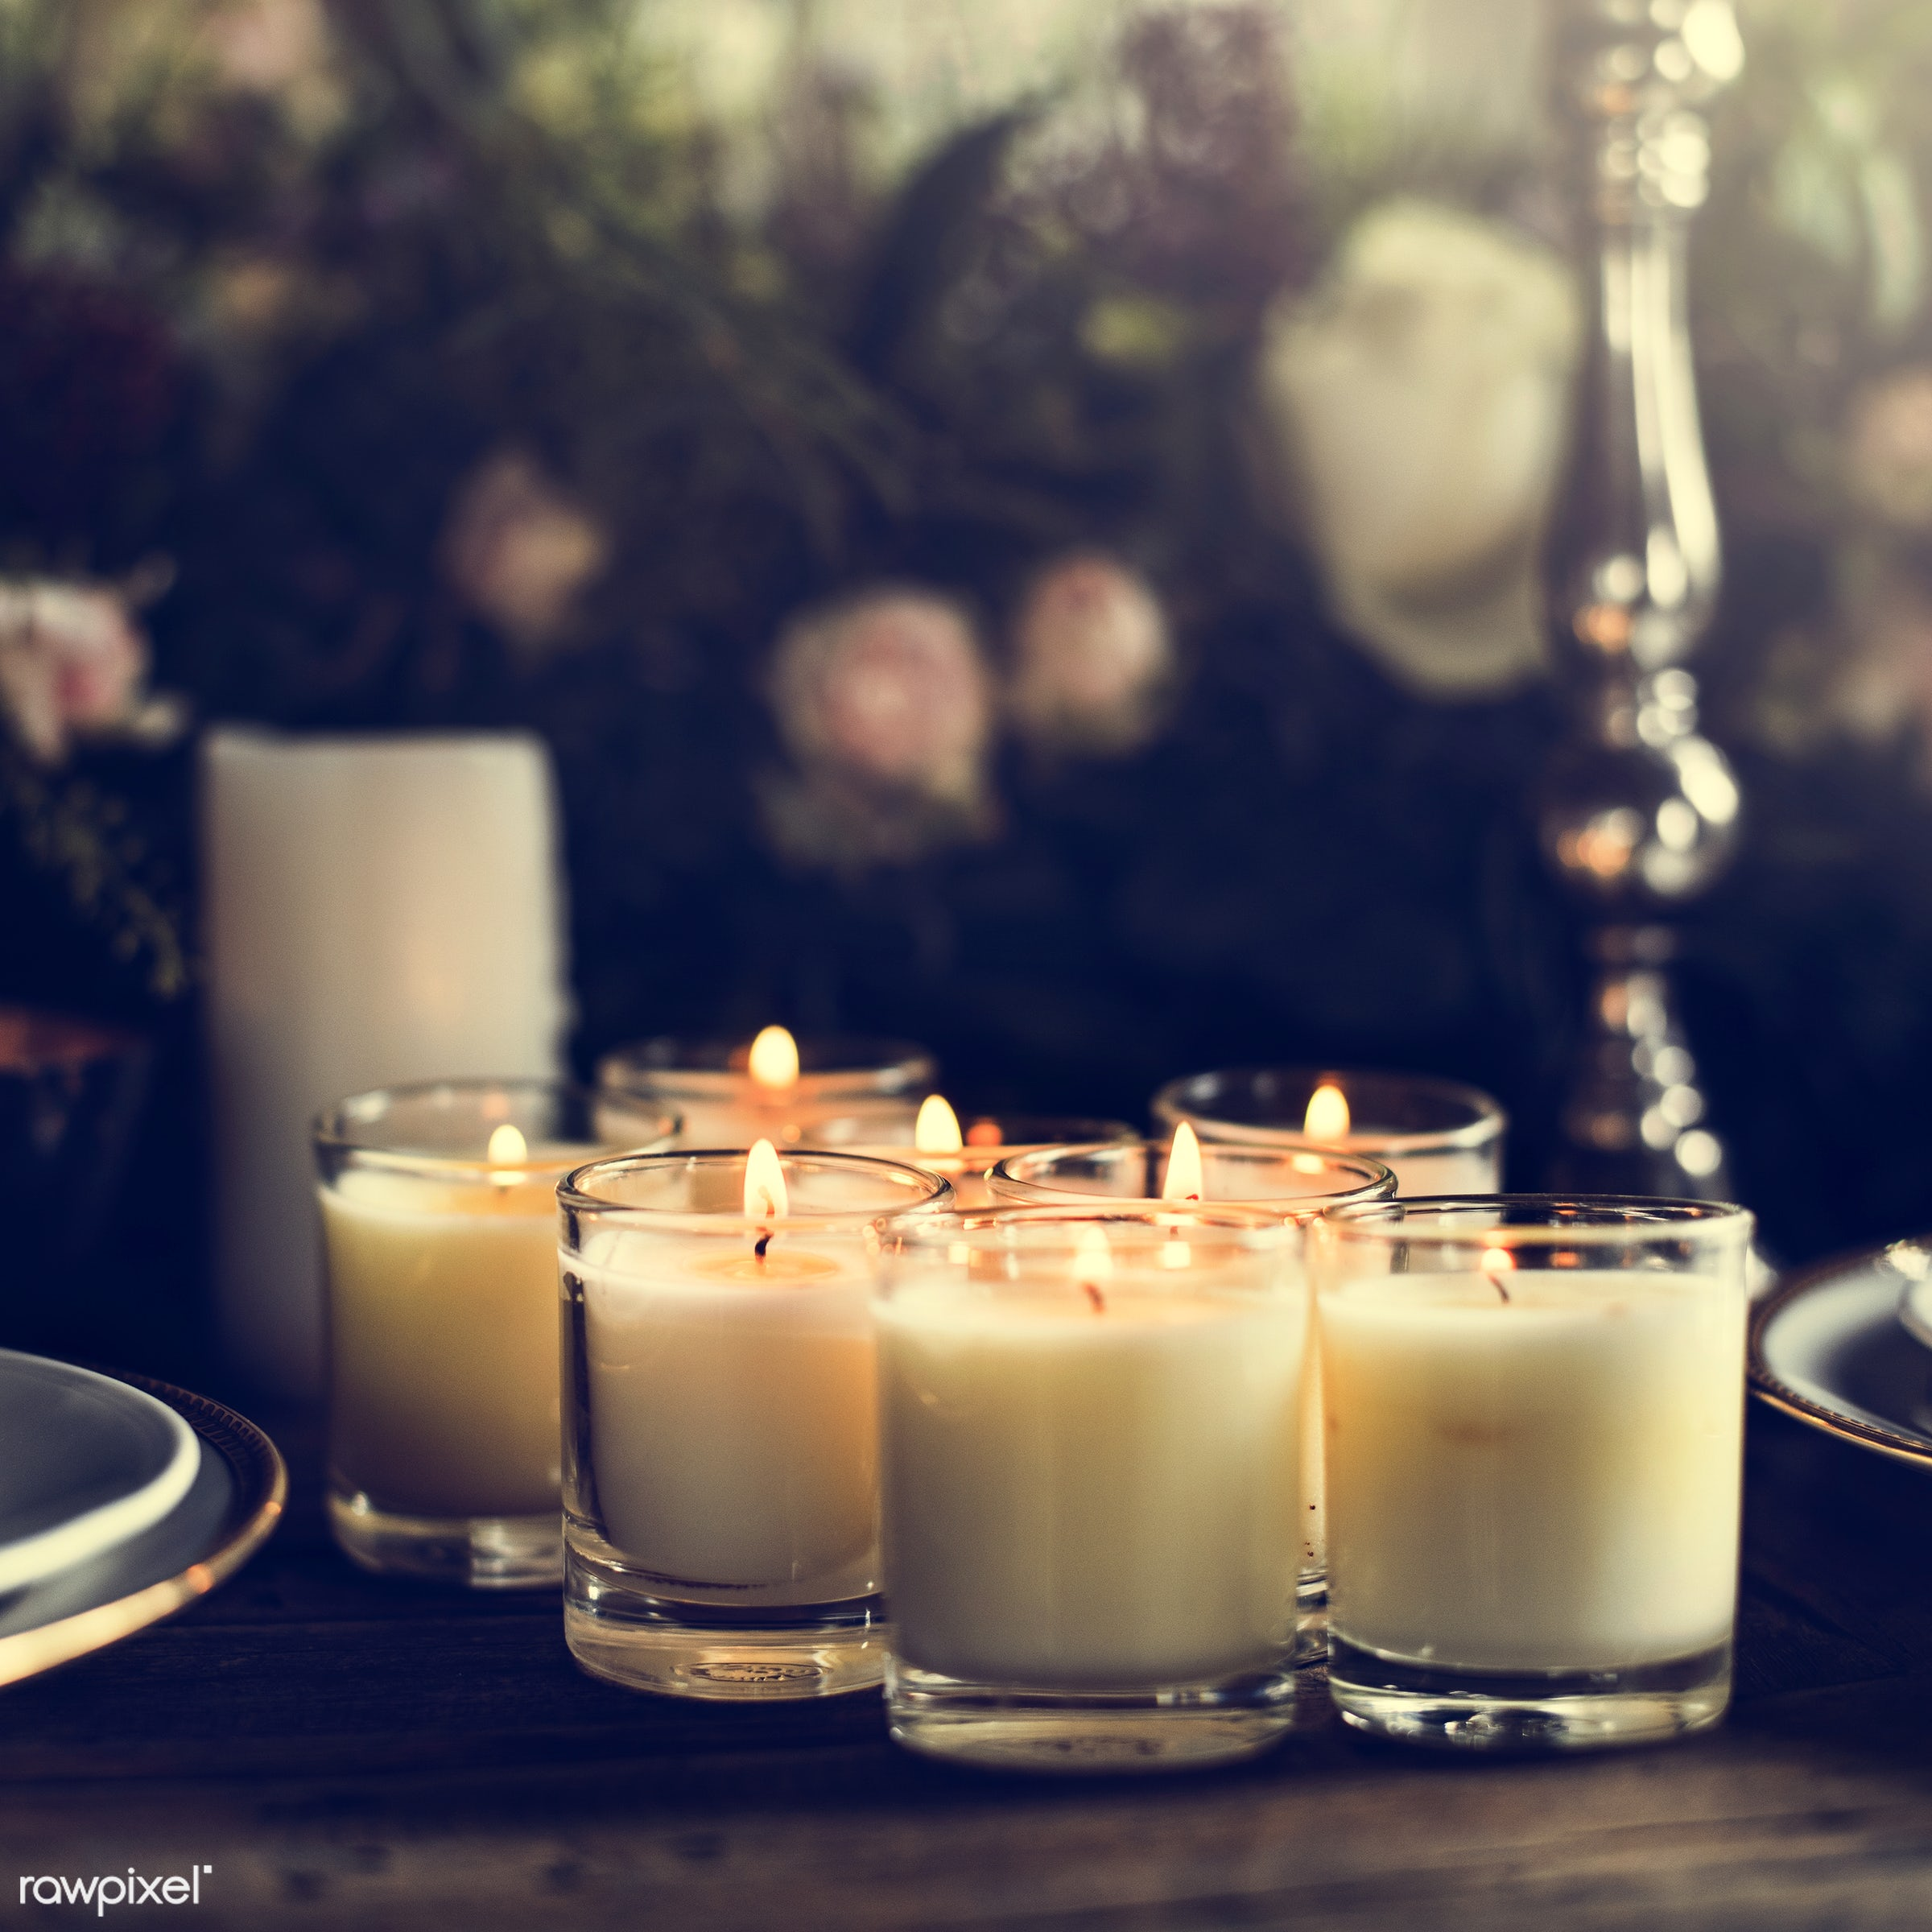 nobody, fancy, catering, set, silverware, party, restaurant, setting, dining table, tablecloth, event, candles, banquet,...